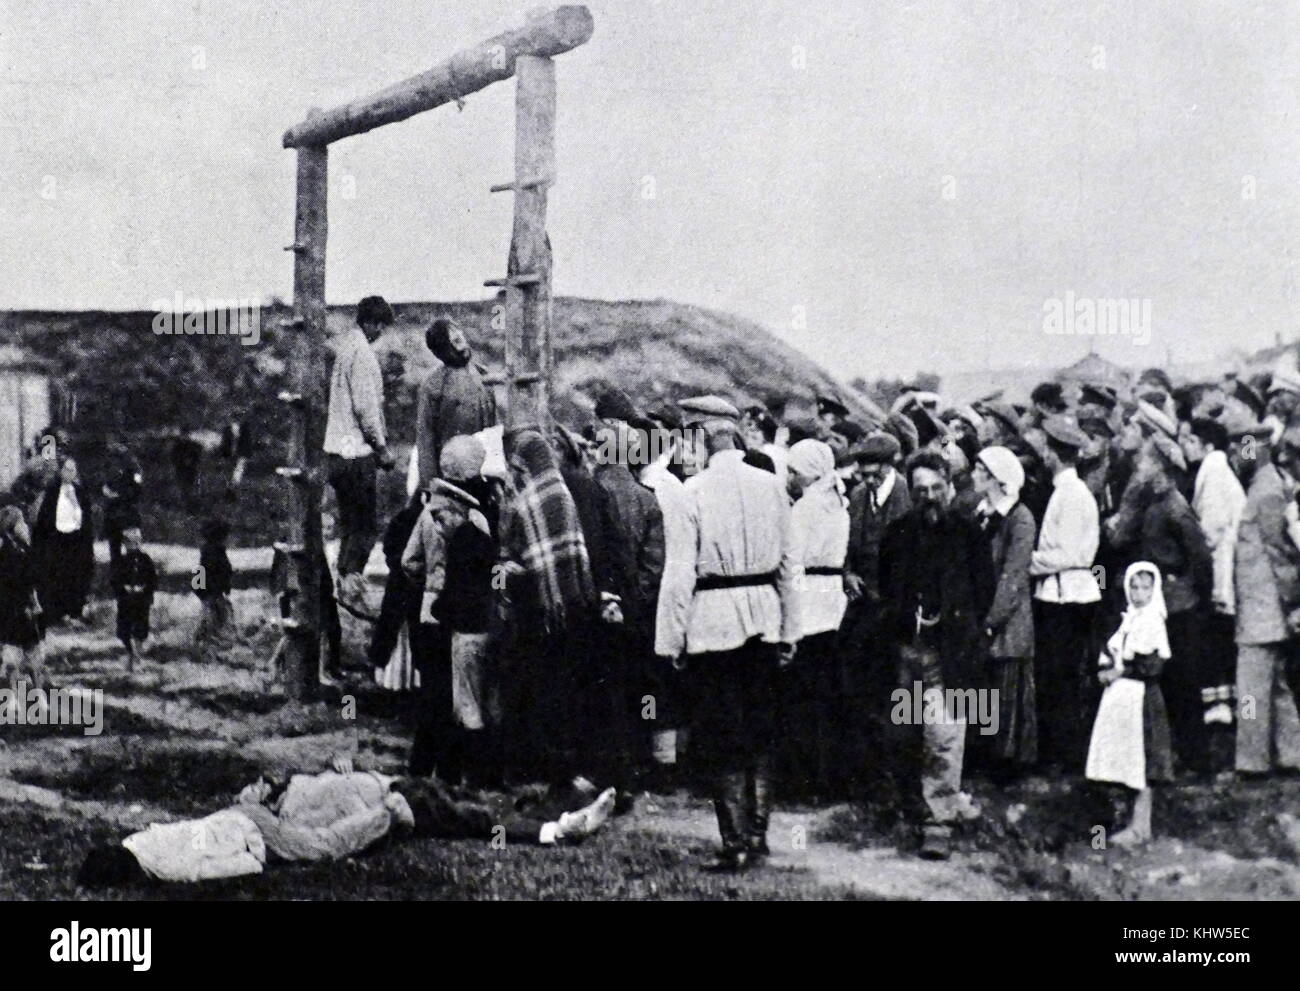 Photograph taken of a White Lynching party. After hanging Bolsheviks, the execution squad invites villagers to take - Stock Image